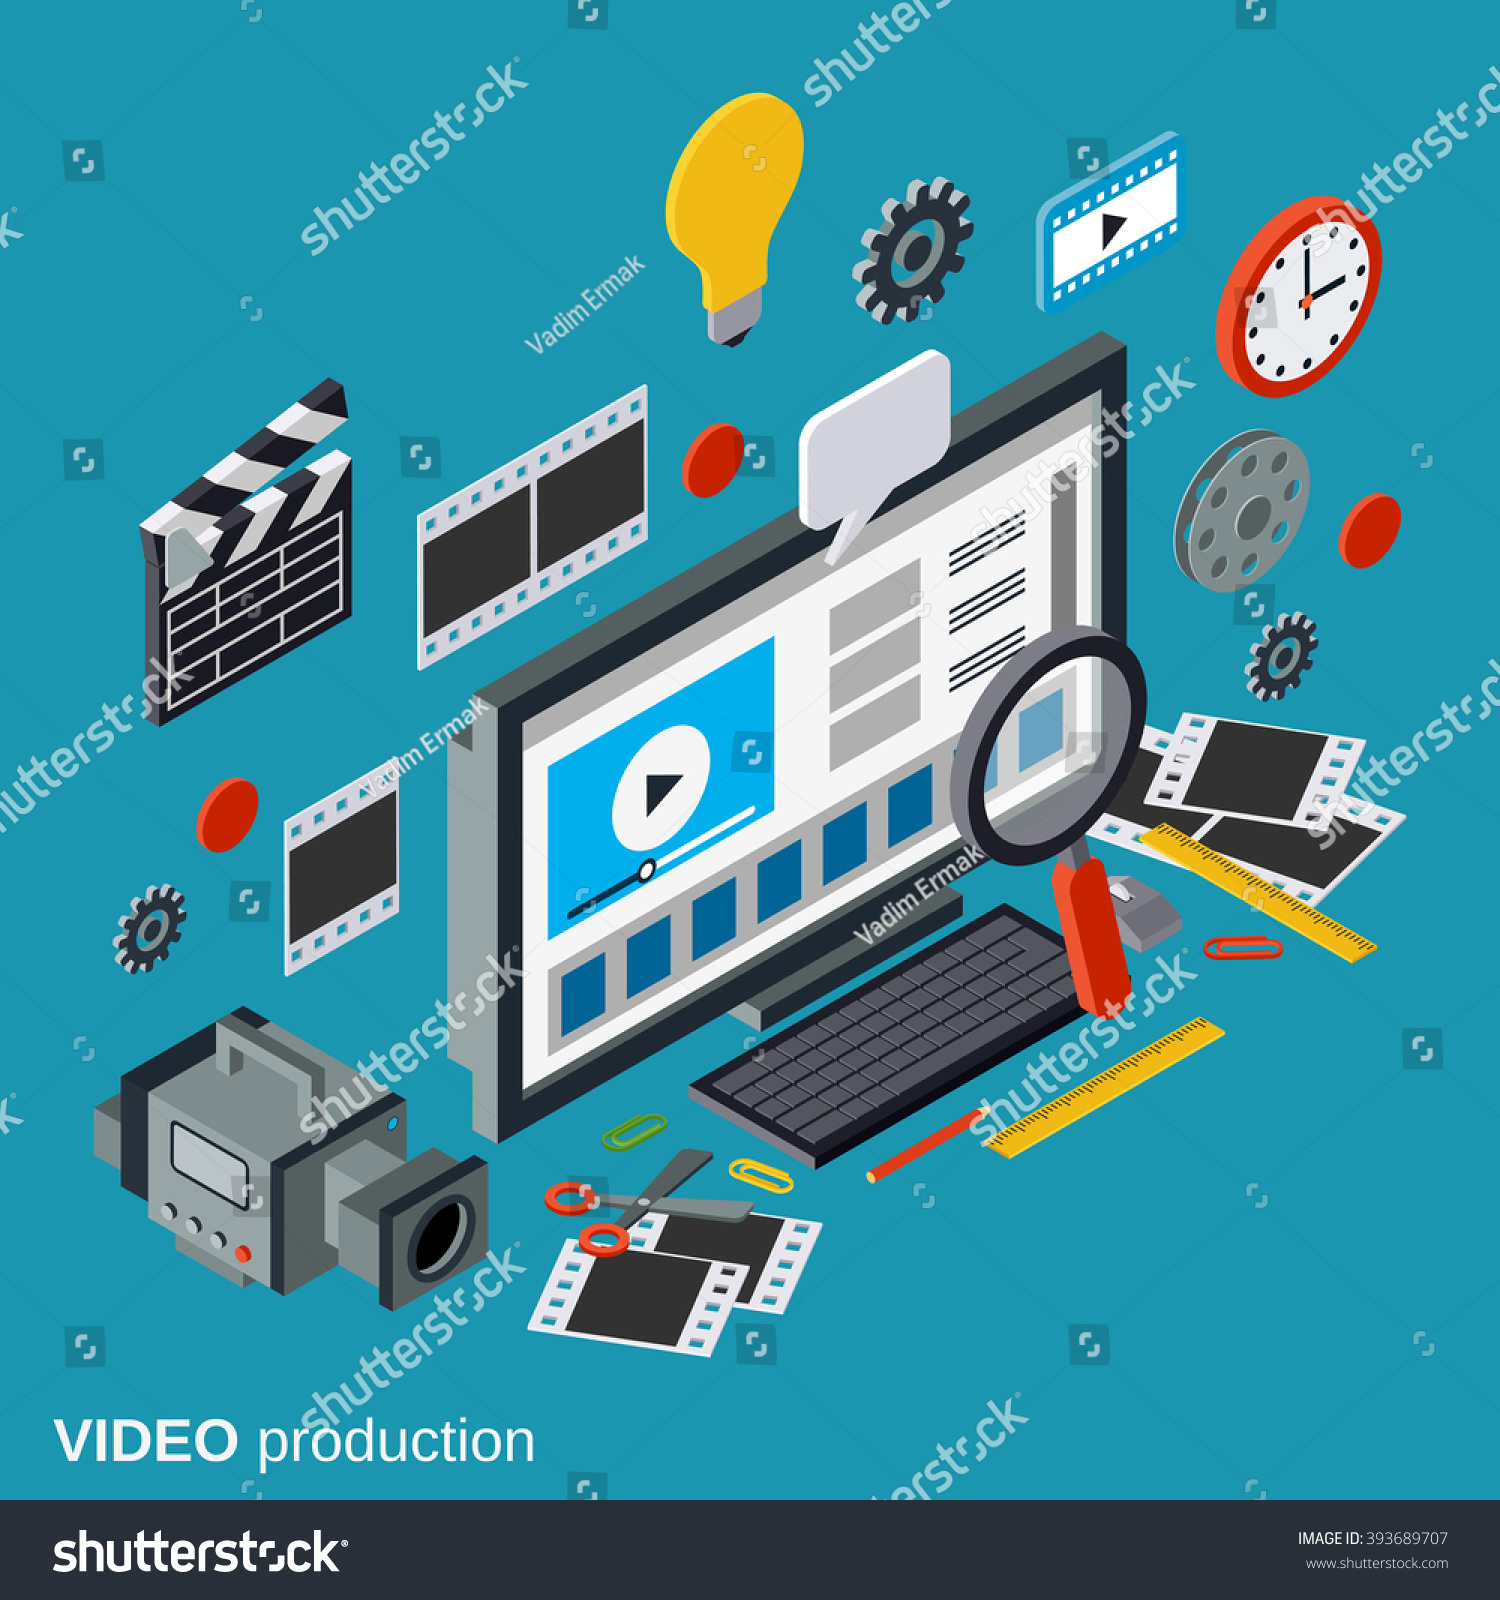 Video Production Flat 3d Isometric Vector Stock Vector